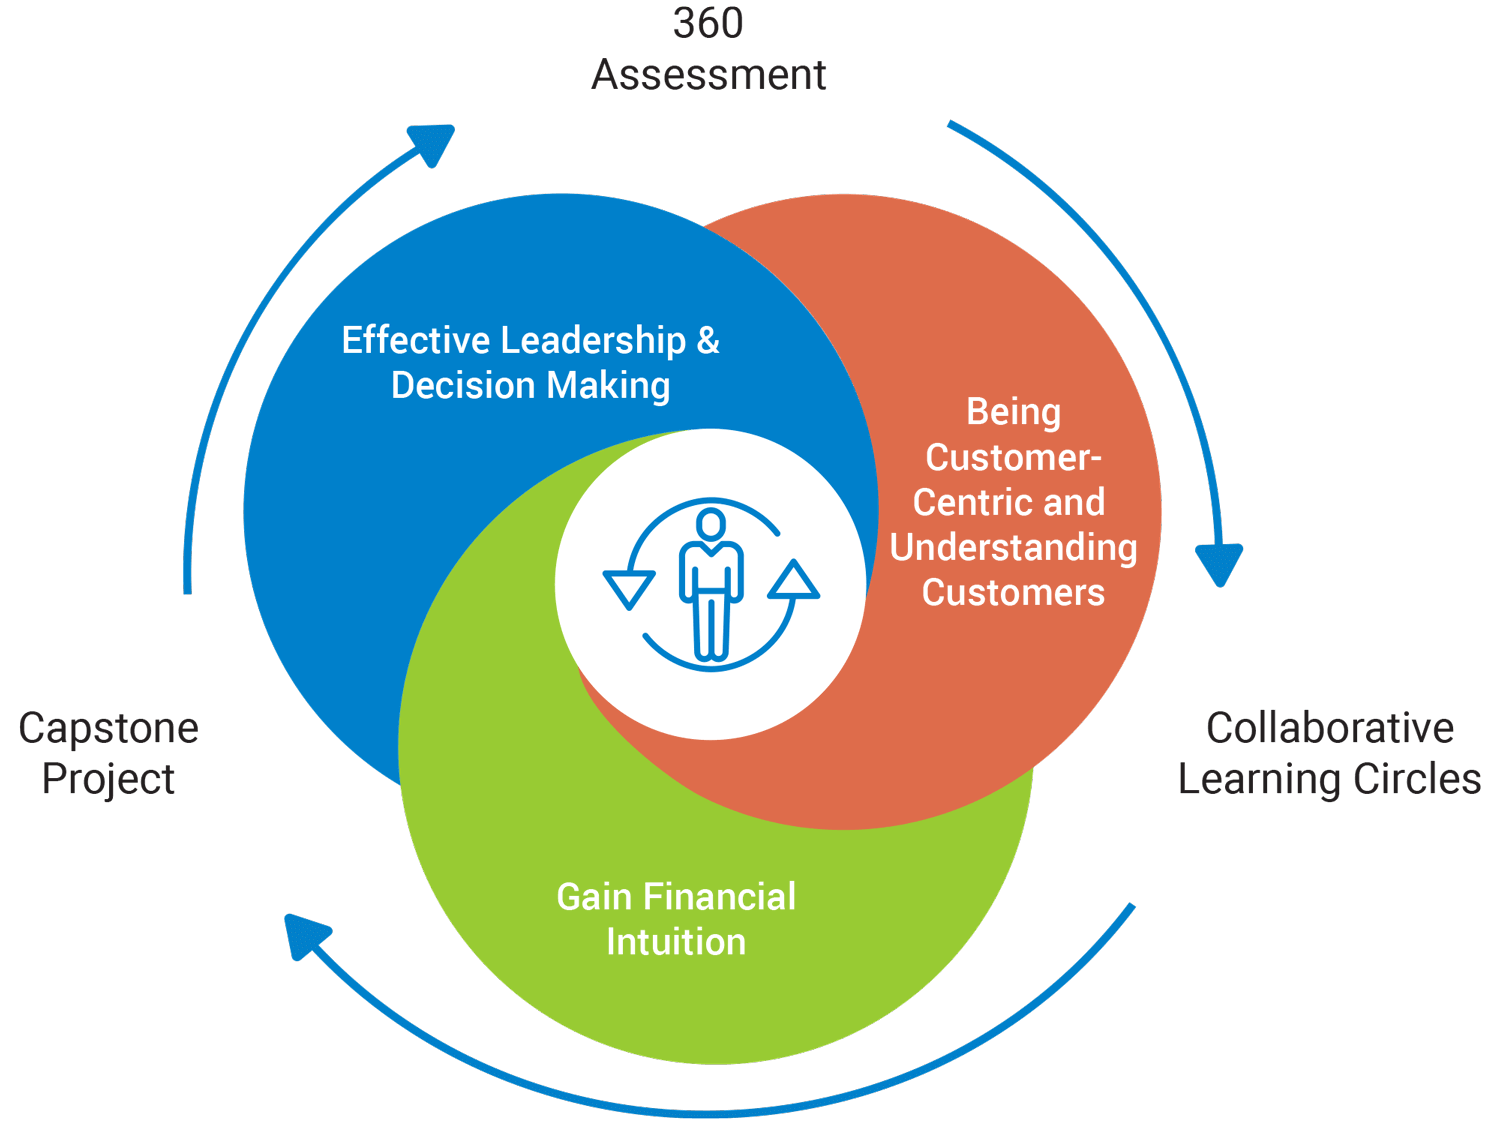 The Learning Journey explains the key three elements of 360 assesment, collaborative learning circles and a Capstone project. This also includes being consumer-centric, understanding customers, gaining financial intuition and effective leadership & decision making.